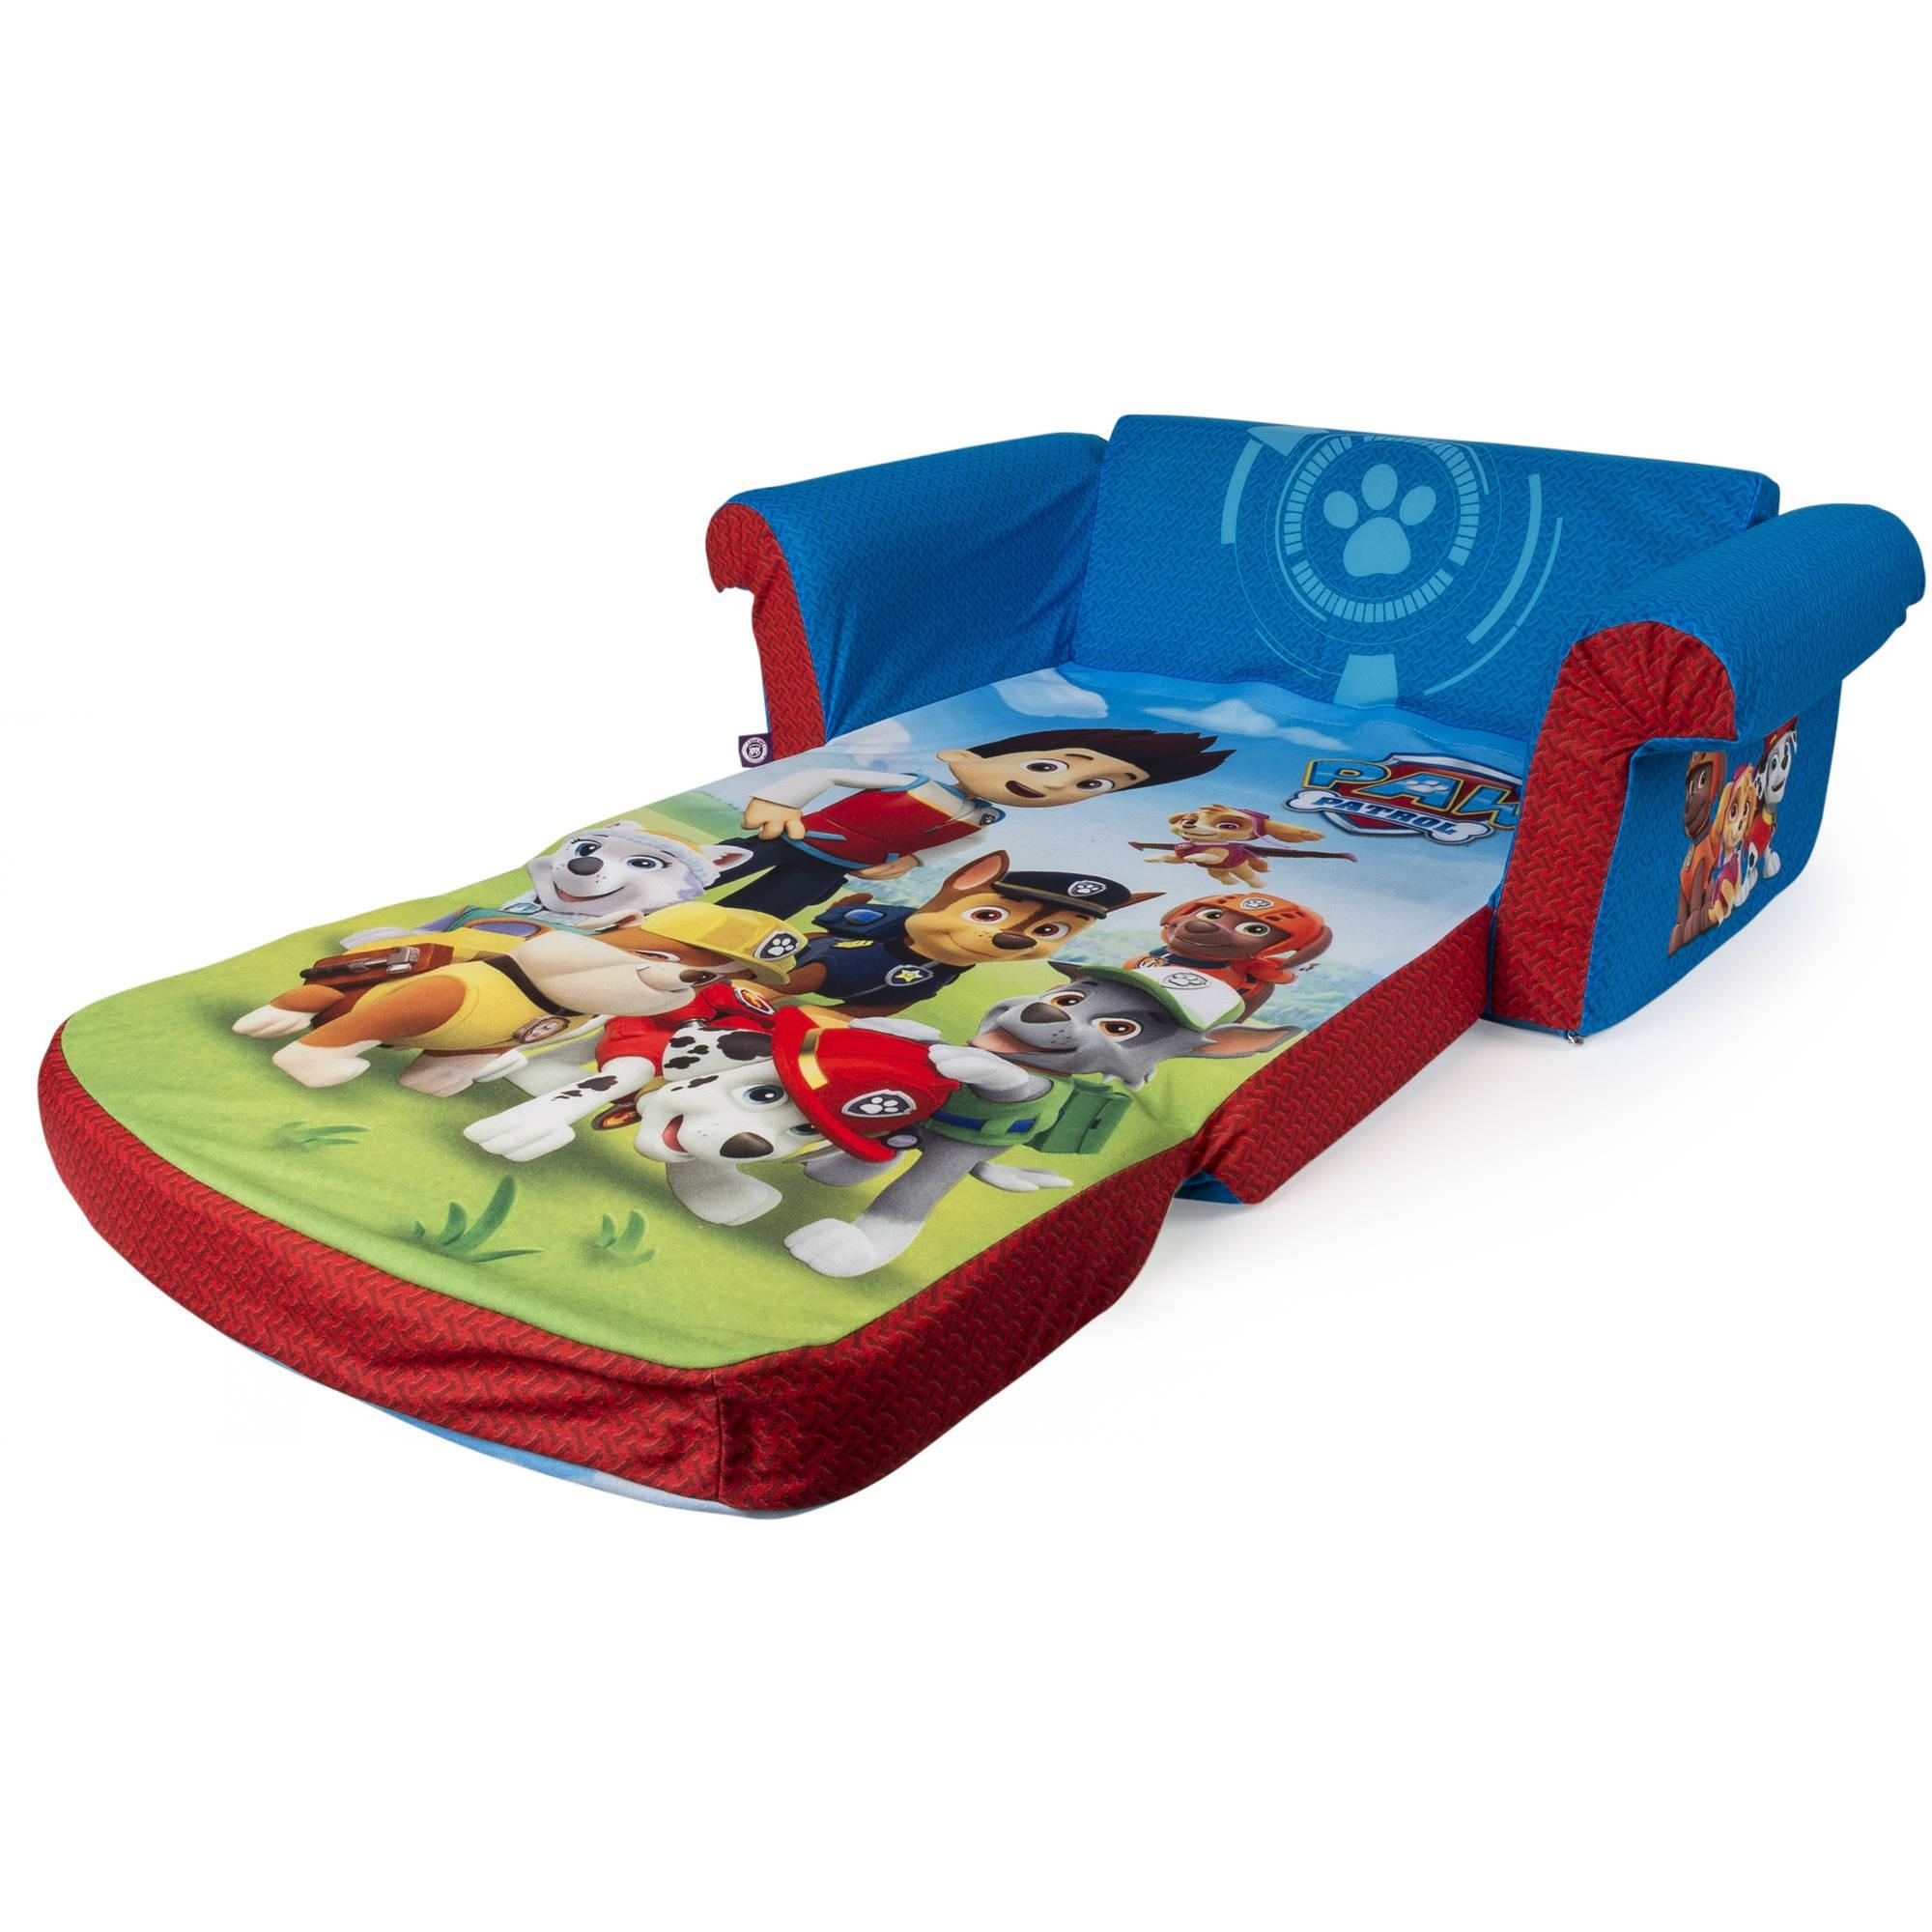 Marshmallow Furniture, Children's 2 In 1 Flip Open Foam Sofa Intended For Flip Out Sofa Bed Toddlers (Image 11 of 20)